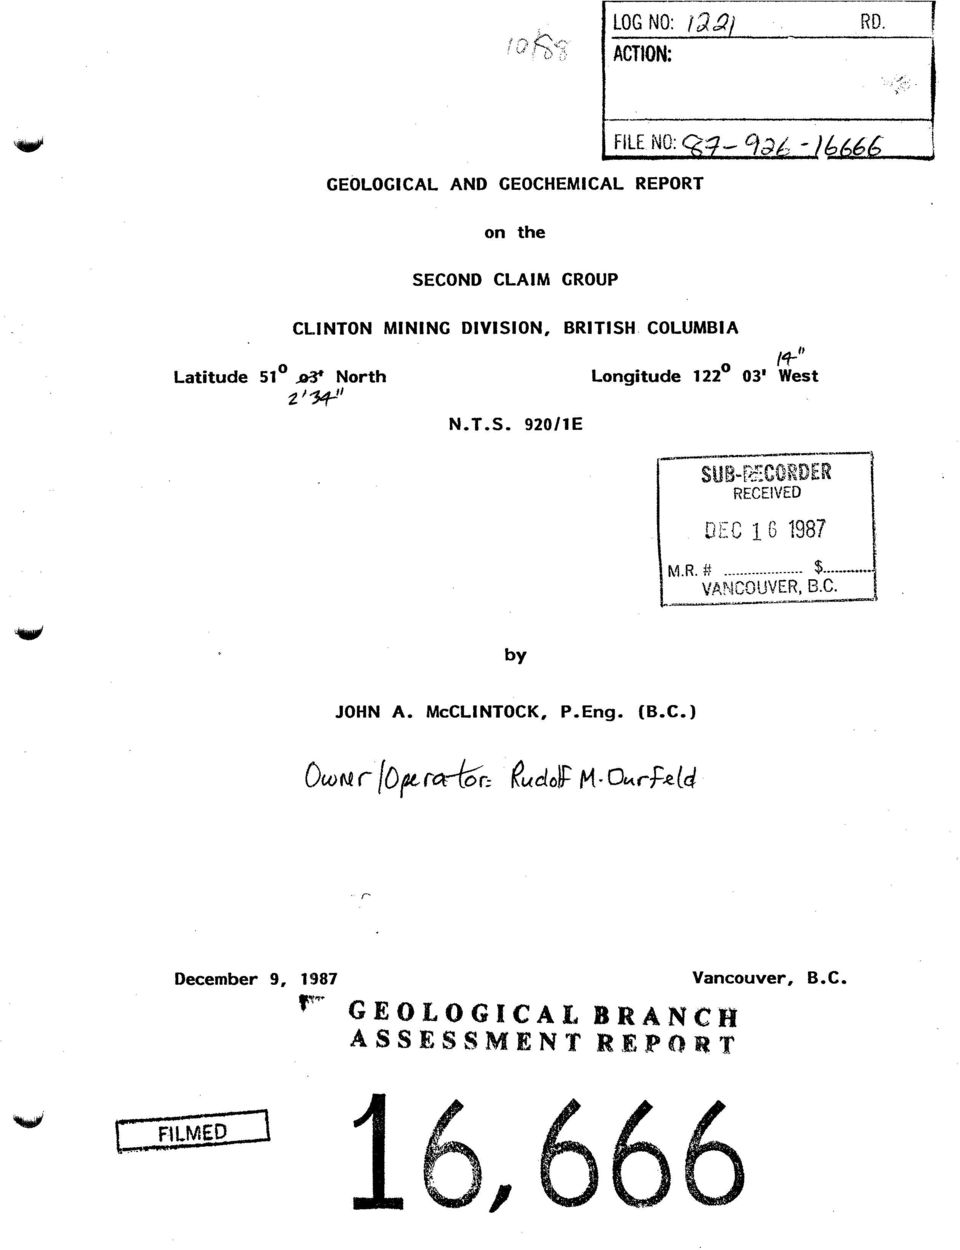 I+/' RD  2 f *rj GEOLOGICAL AND GEOCHEMICAL REPORT  on the SECOND